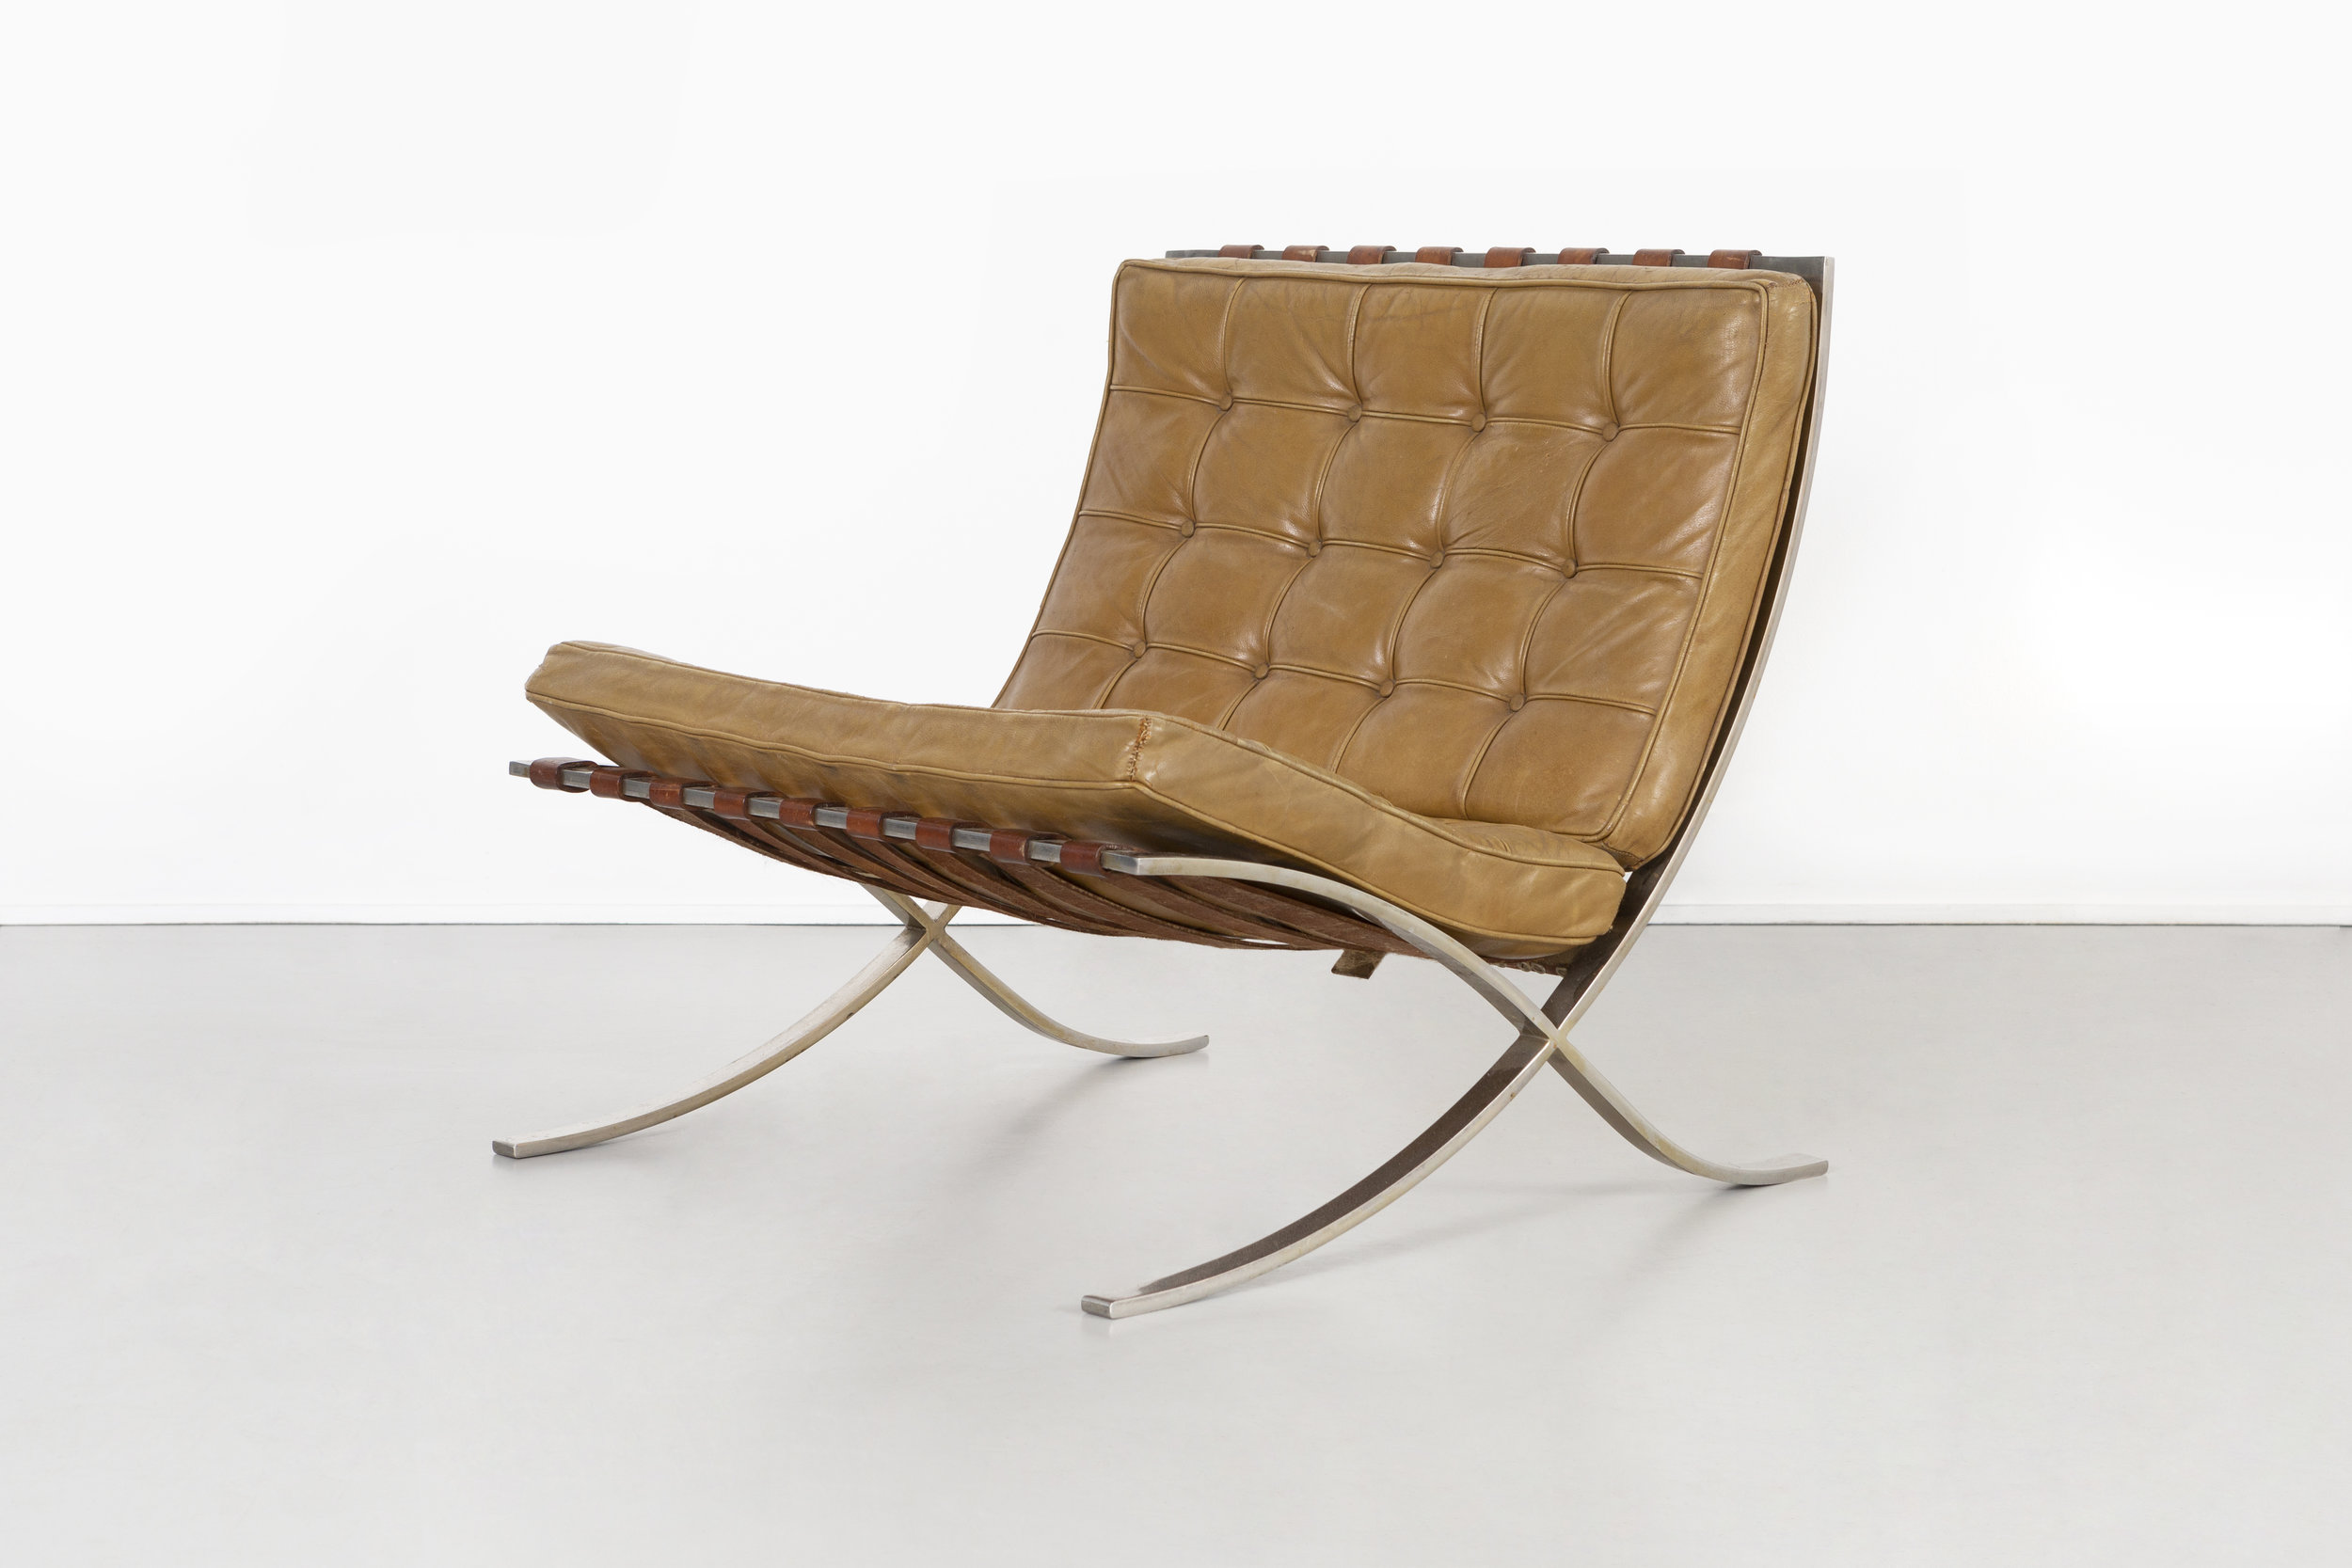 The show includes a  Barcelona chair  with a prototype cushion that Mies designed for his towers at 860–880 Lake Shore Drive. The chair, as well as never-before-seen ephemera, is on loan from T. Paul Young, an architect who worked in Mies's studio.